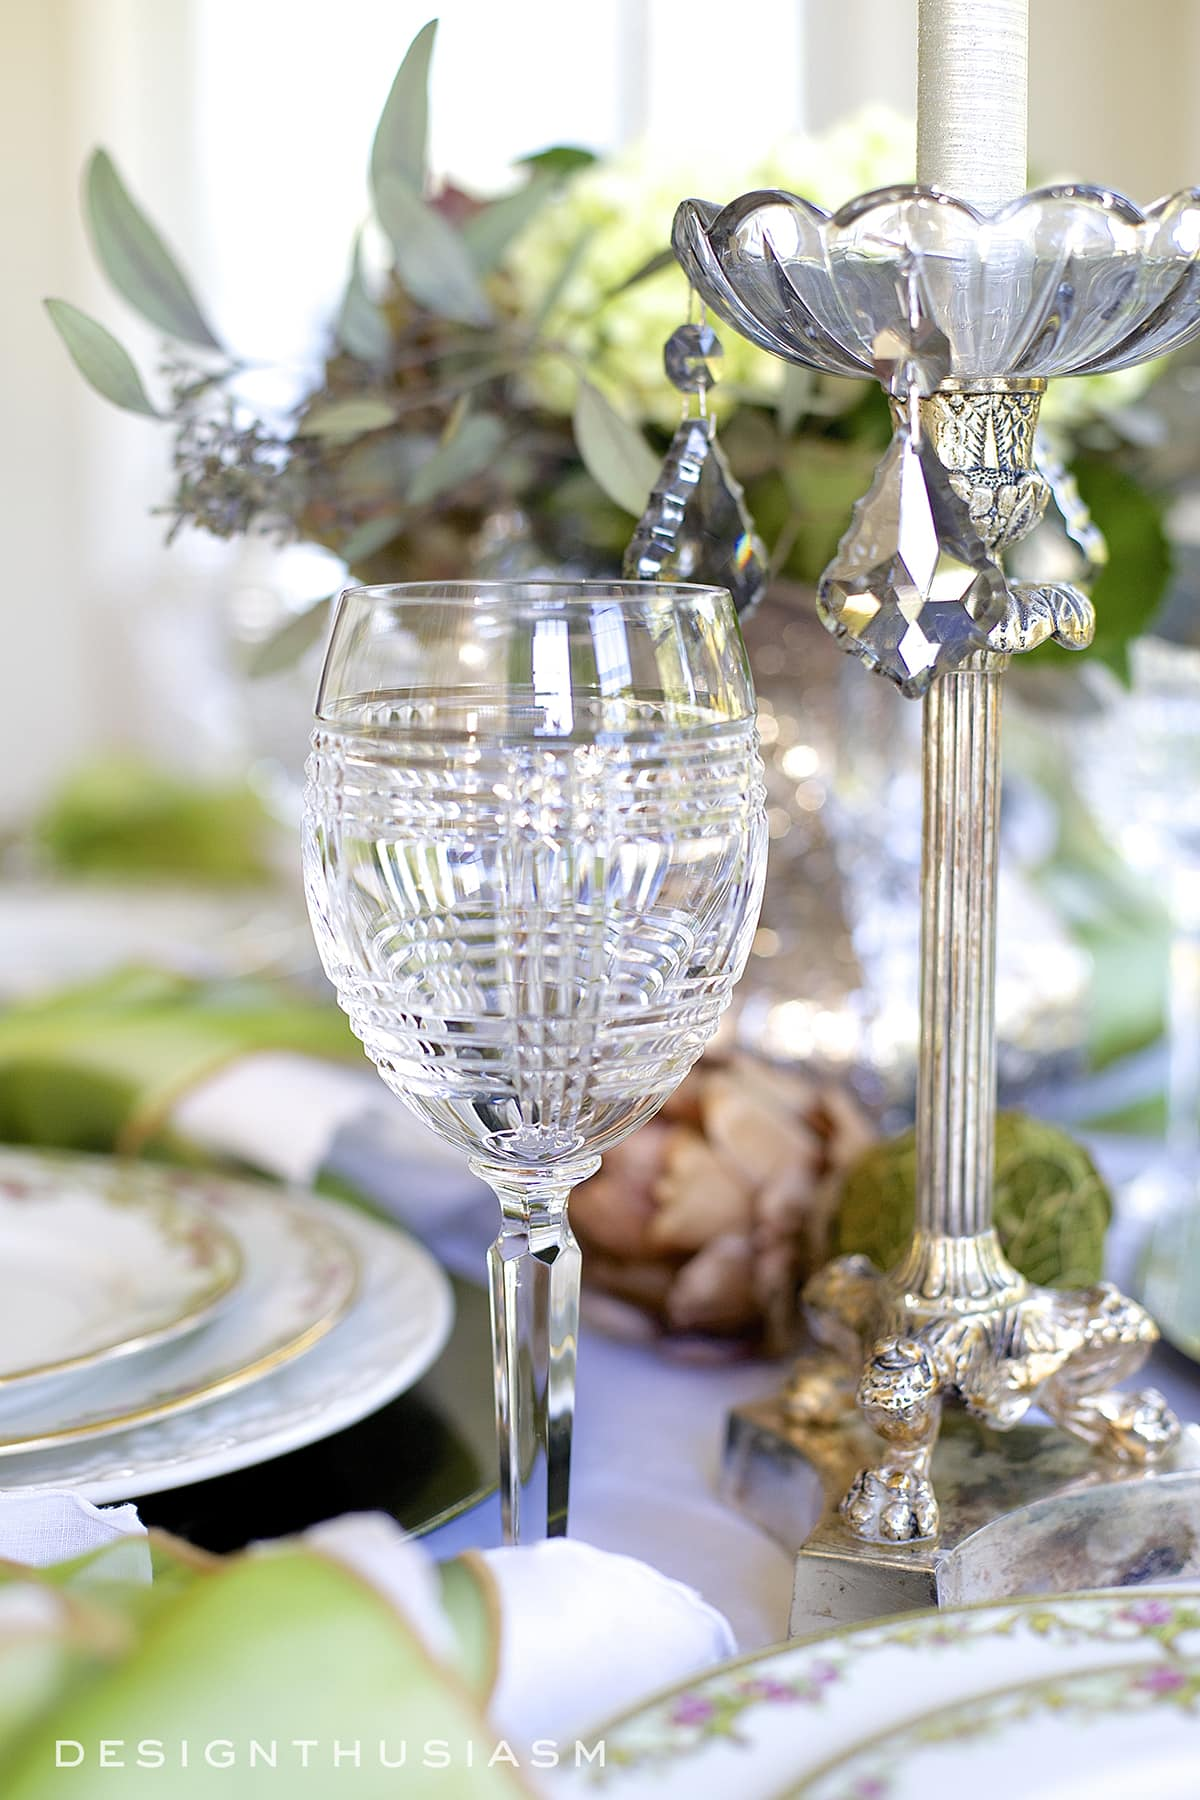 Mixing Casual and Formal in a Tablescape | Designthusiasm.com